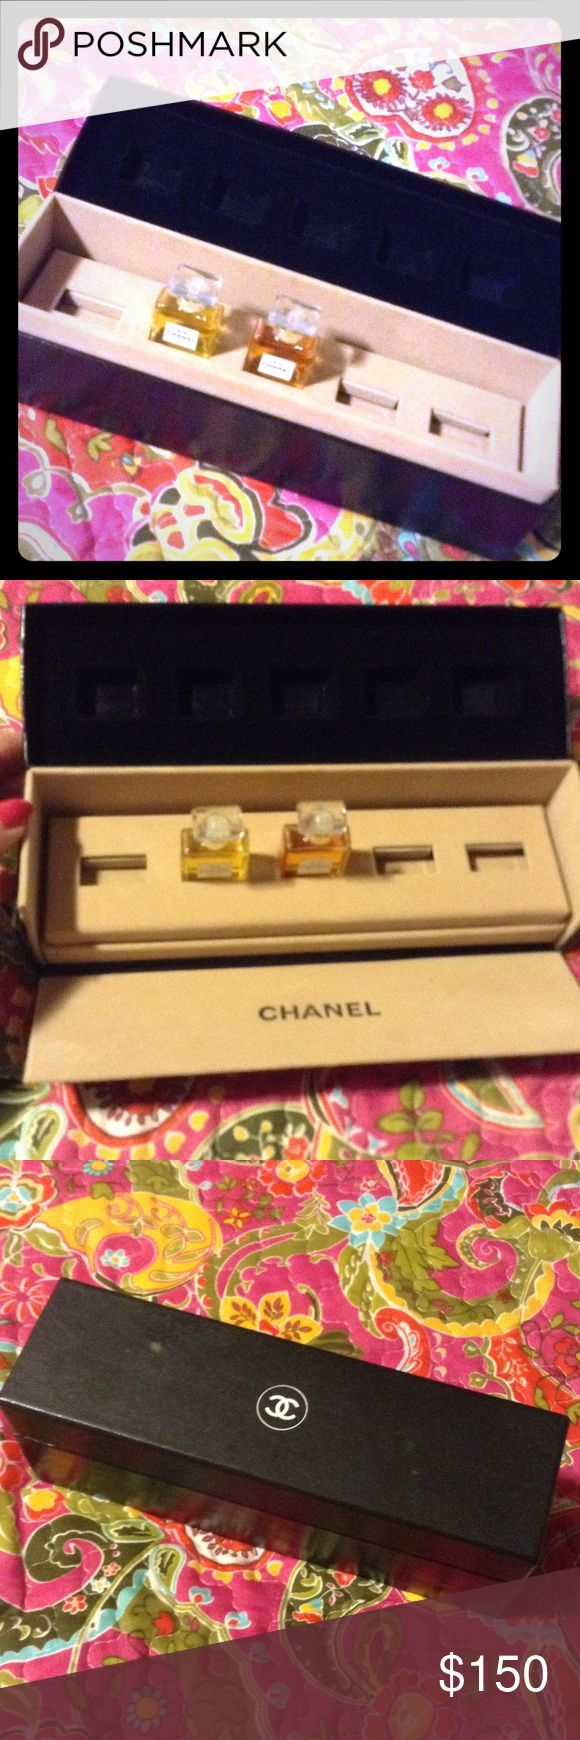 Chanel gift set, vintage Chanel gift set, vintage...this is old so the perfume probably not good but the box is super cool. It was one of my favorite presentations over many years of buying the gift sets. Chanel Other